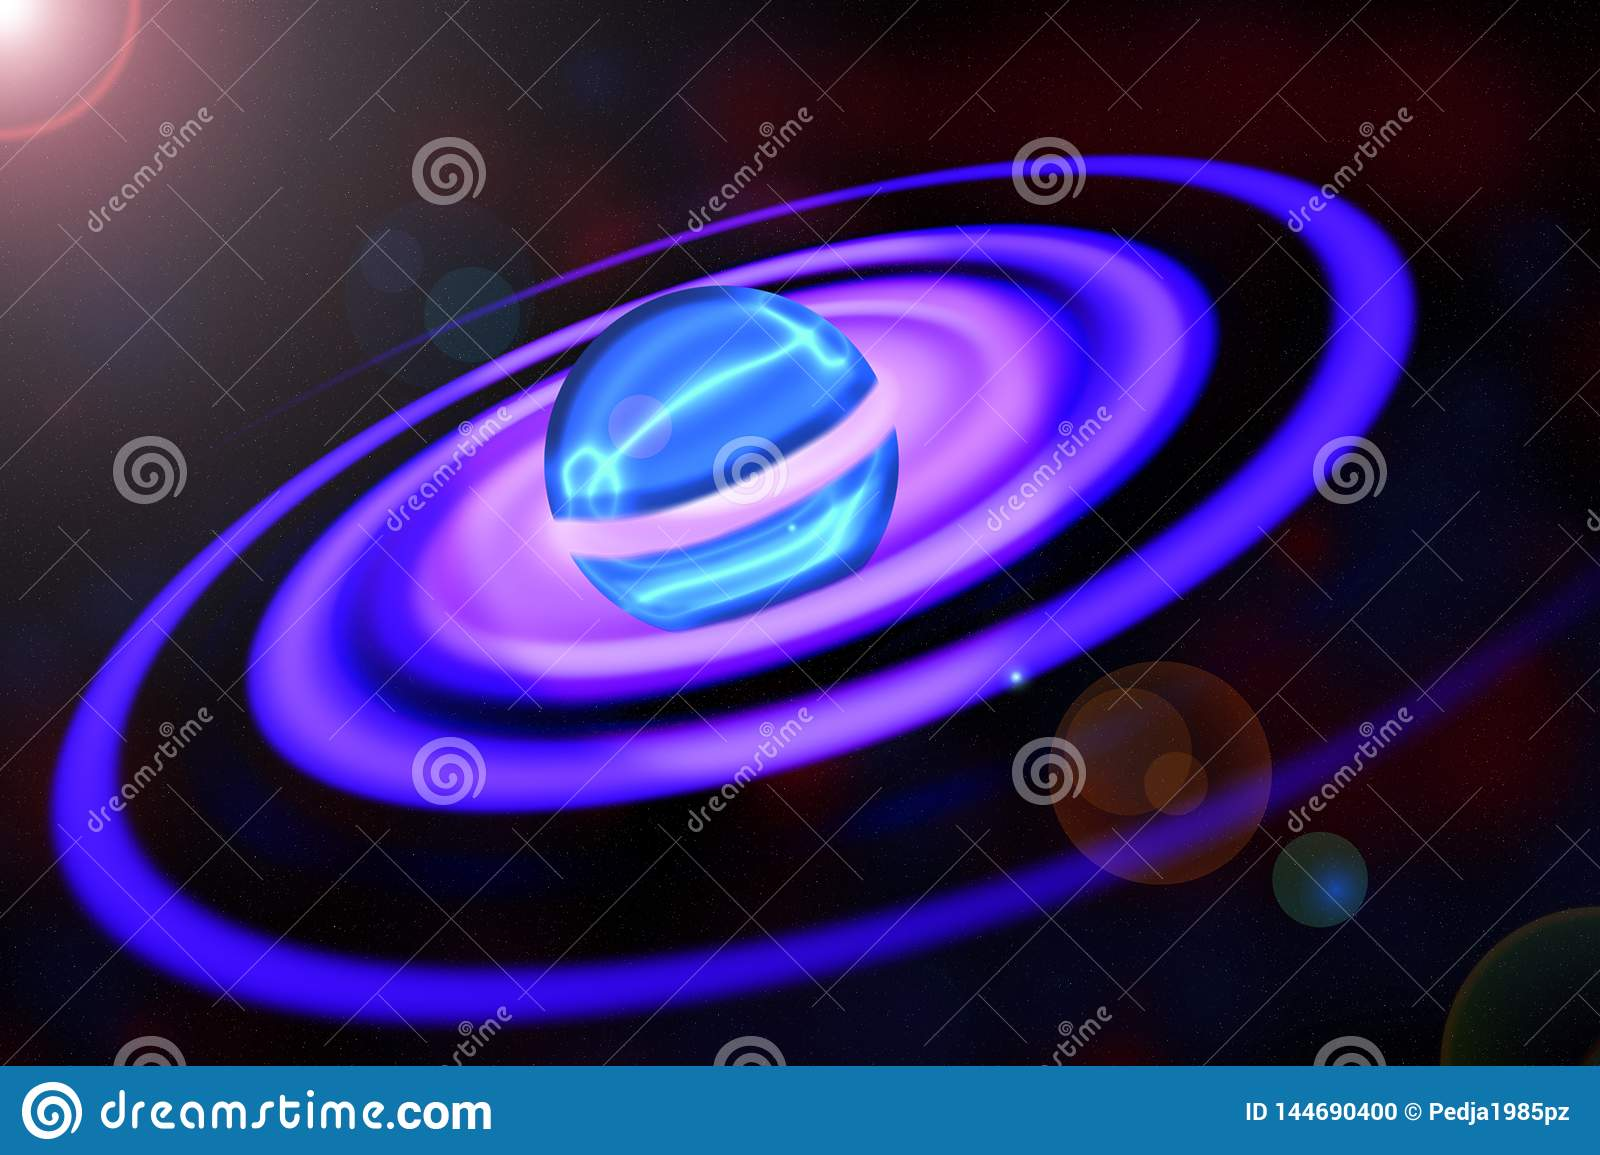 Spectacular Planet with Spiral Rings